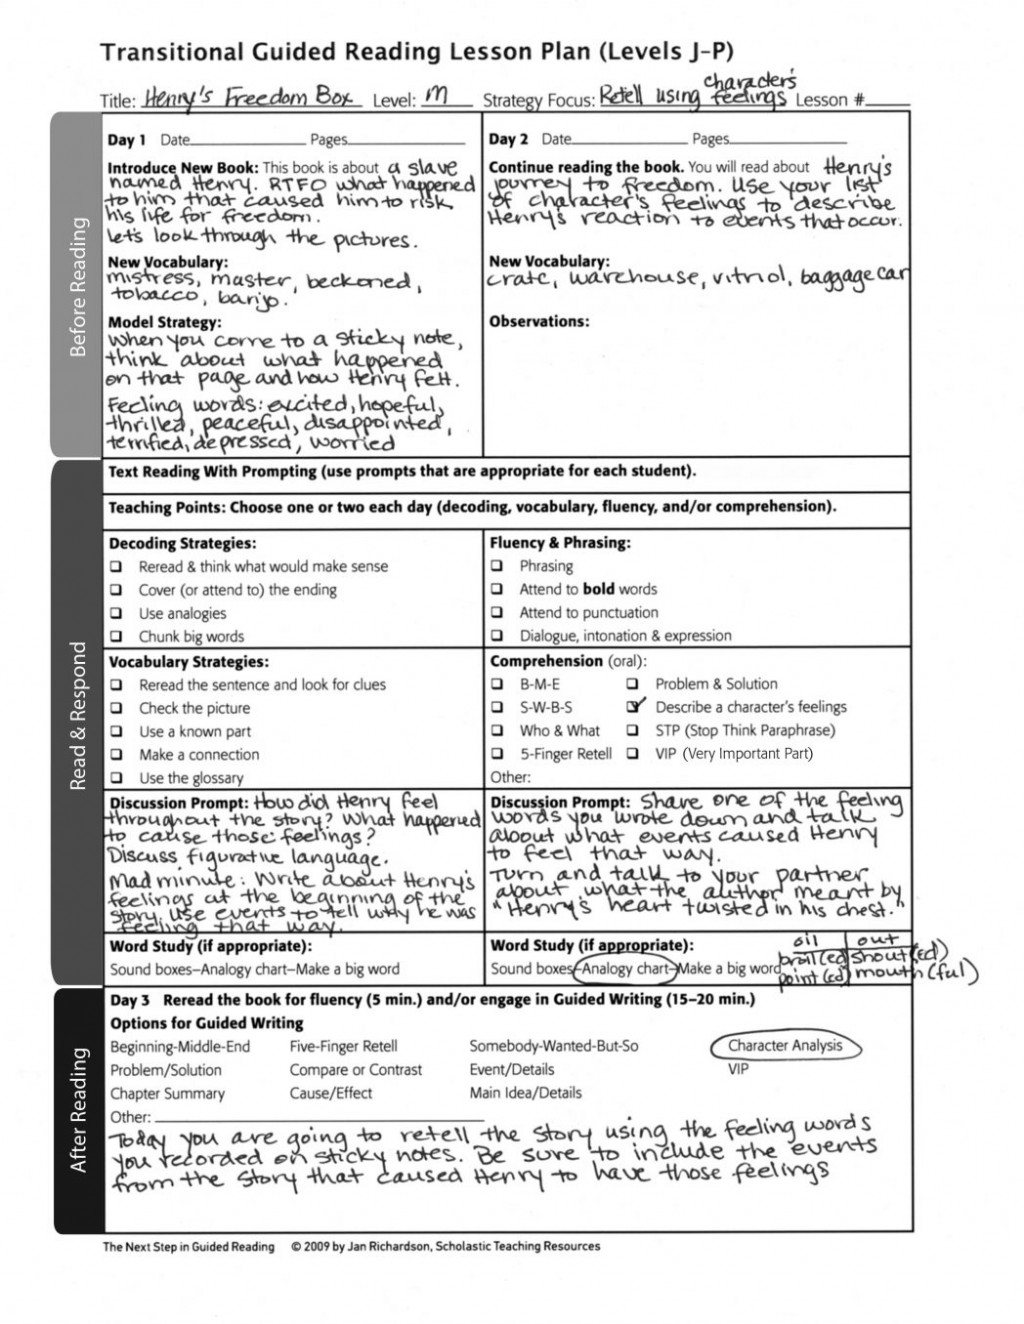 012 Define Happiness Essay Clever Titles How To Write Good Definition Outline Fi4 Handout Guided Reading Videos Transitional Lesson Plan M Comp 1048x1356 Imposing And Factors Influence Argument Large